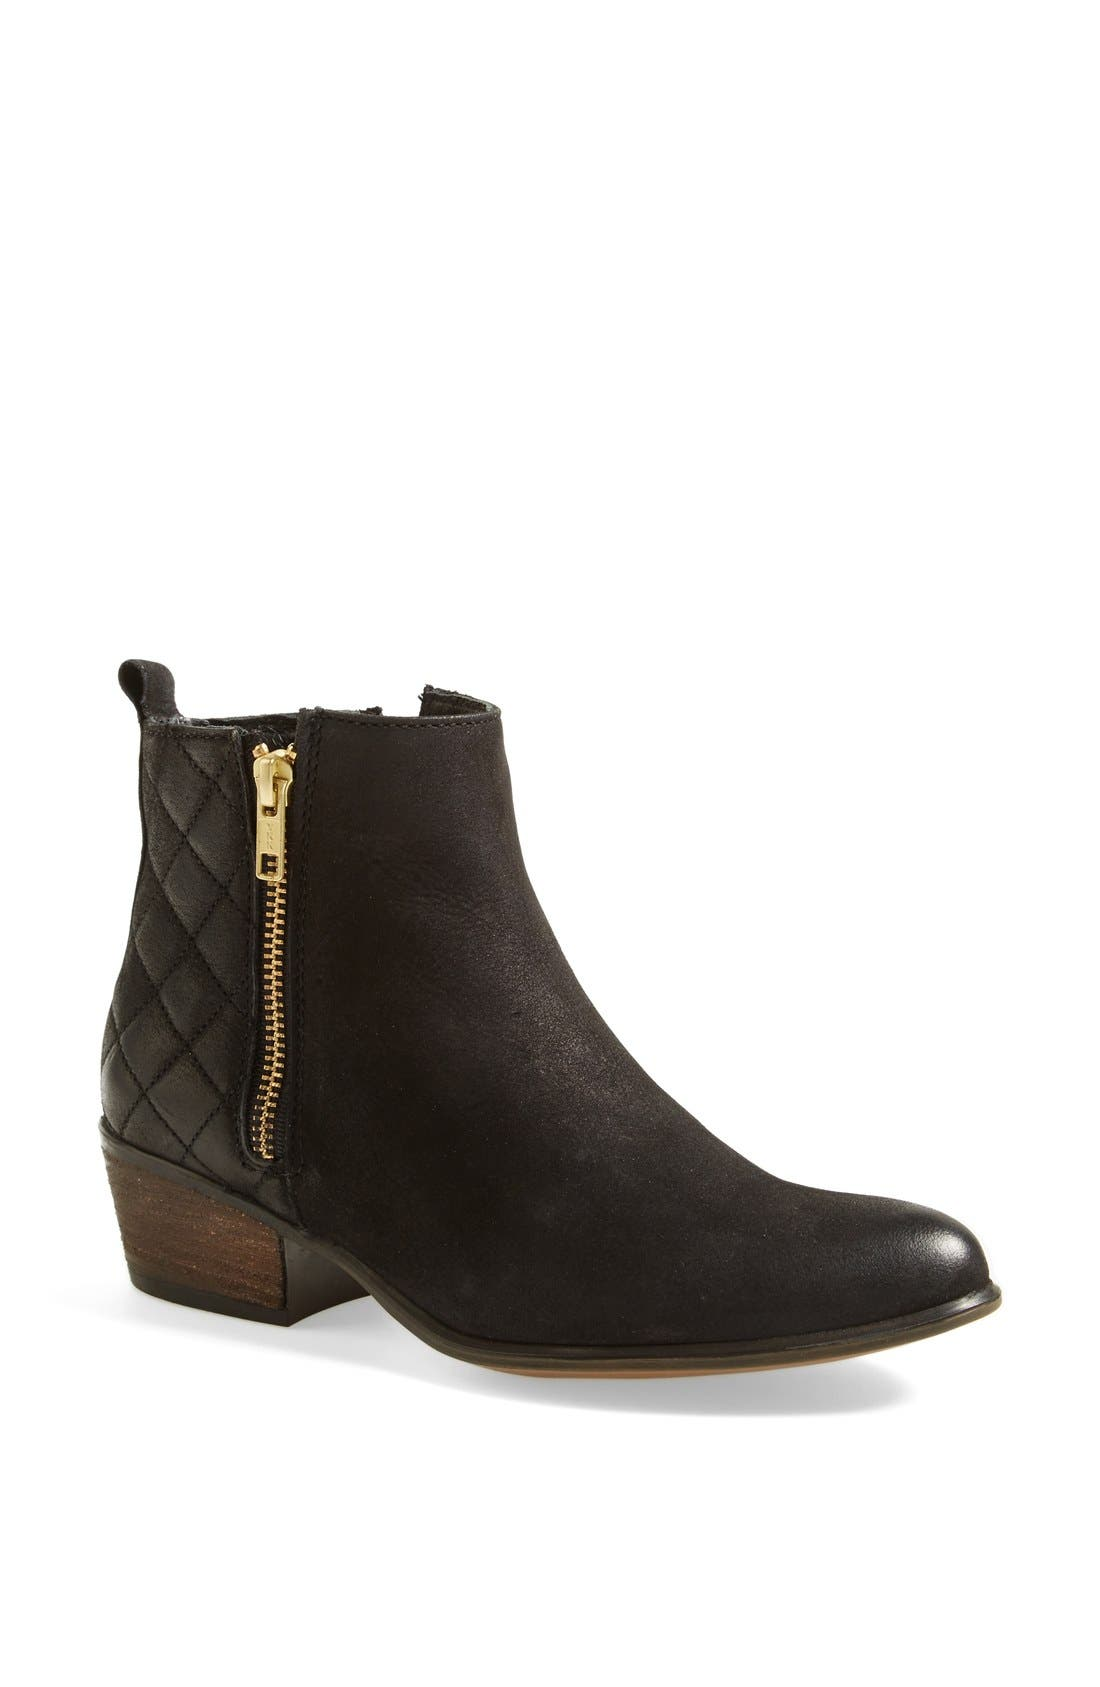 Alternate Image 1 Selected - Steve Madden 'Nyrvana' Boot (Women)